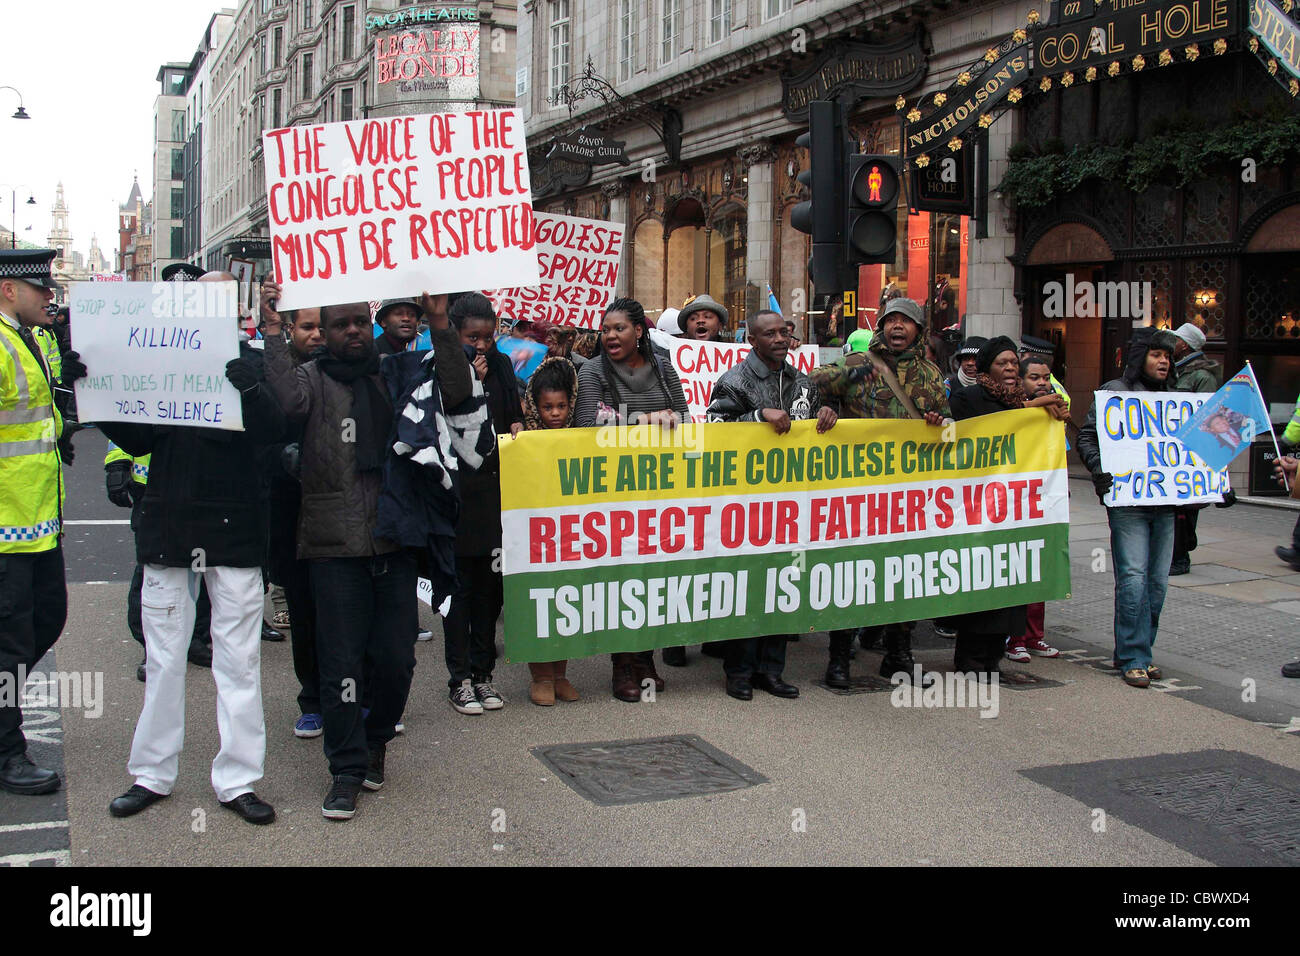 Congolese demonstrators march down the Strand in London - Stock Image